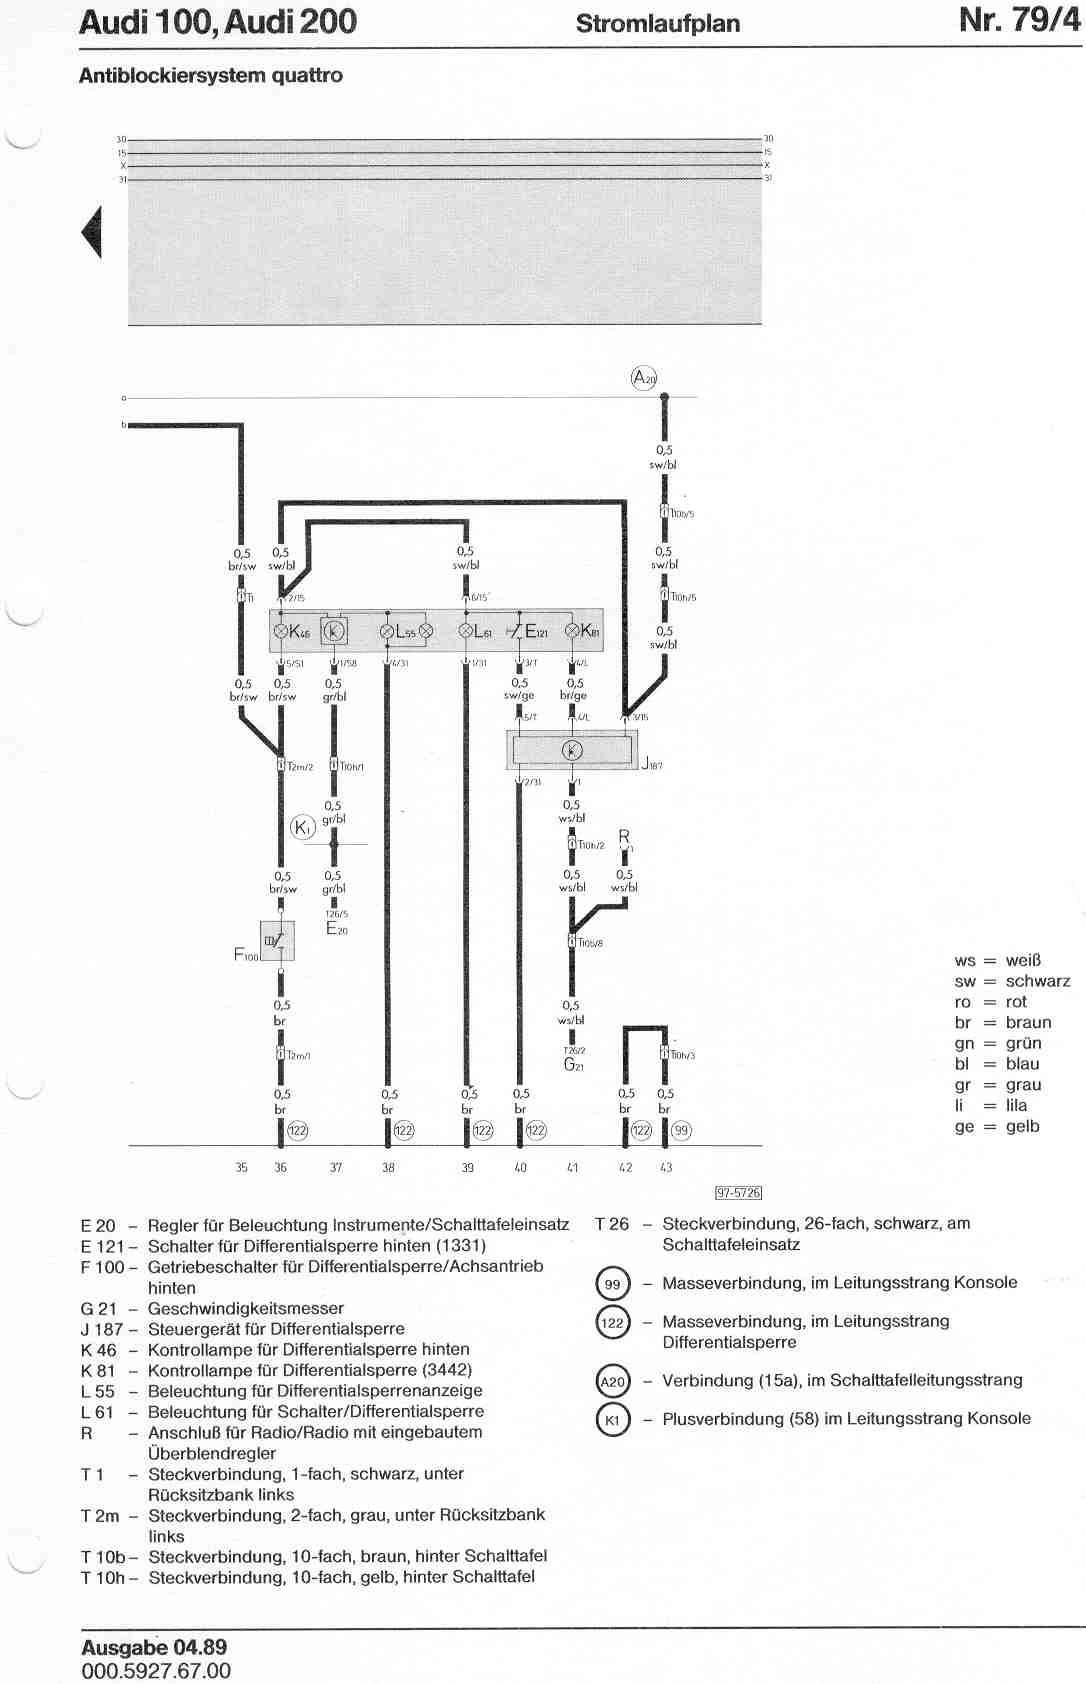 Audi 100 200 Factory Wiring Diagrams 2 8 12 Valve Engine Diagram Page 1 3 4 5